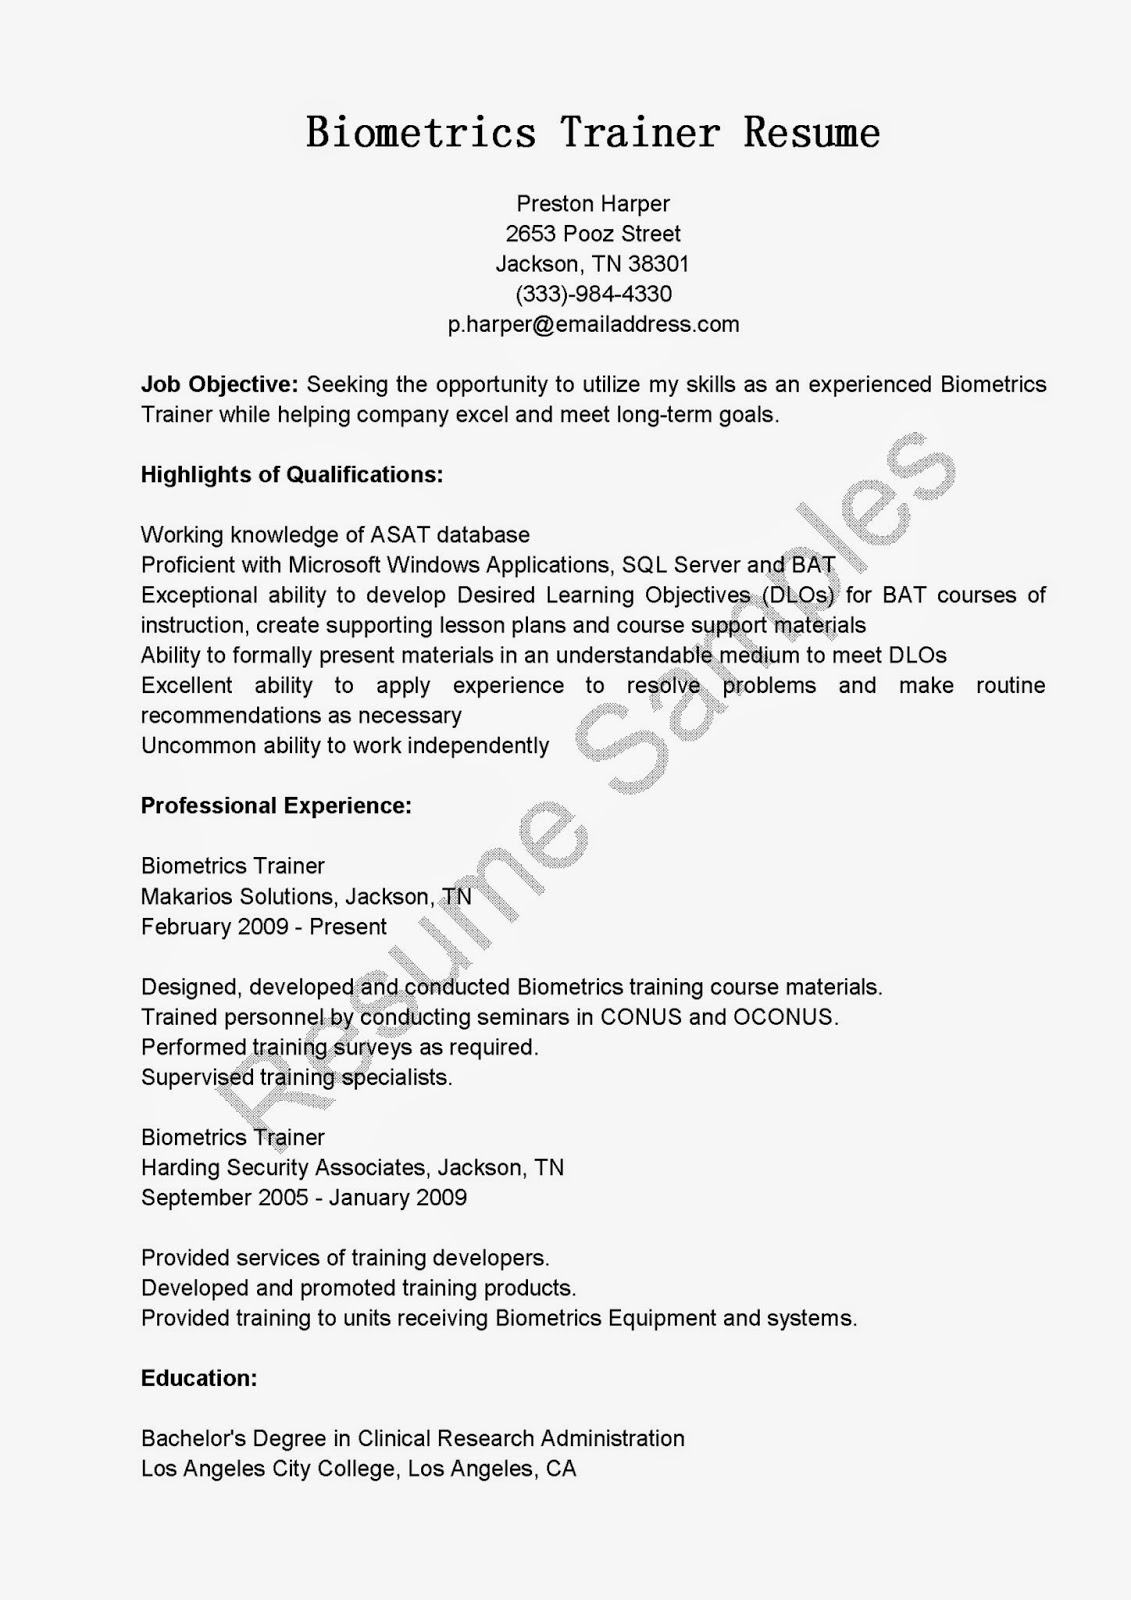 trainer resume software trainer resume samples retail trainer resume samples biometrics trainer resume sample - Training Resume